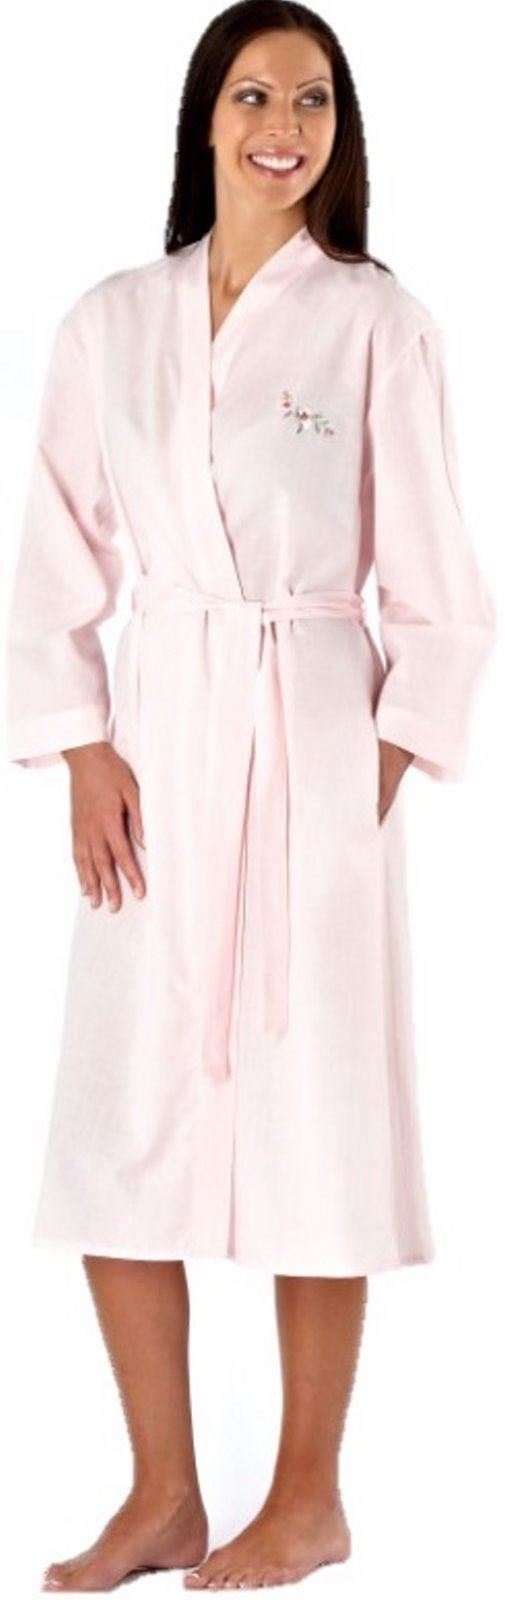 femme grande taille kimono portefeuille robe chambre soir peignoir lingerie nuit ebay. Black Bedroom Furniture Sets. Home Design Ideas